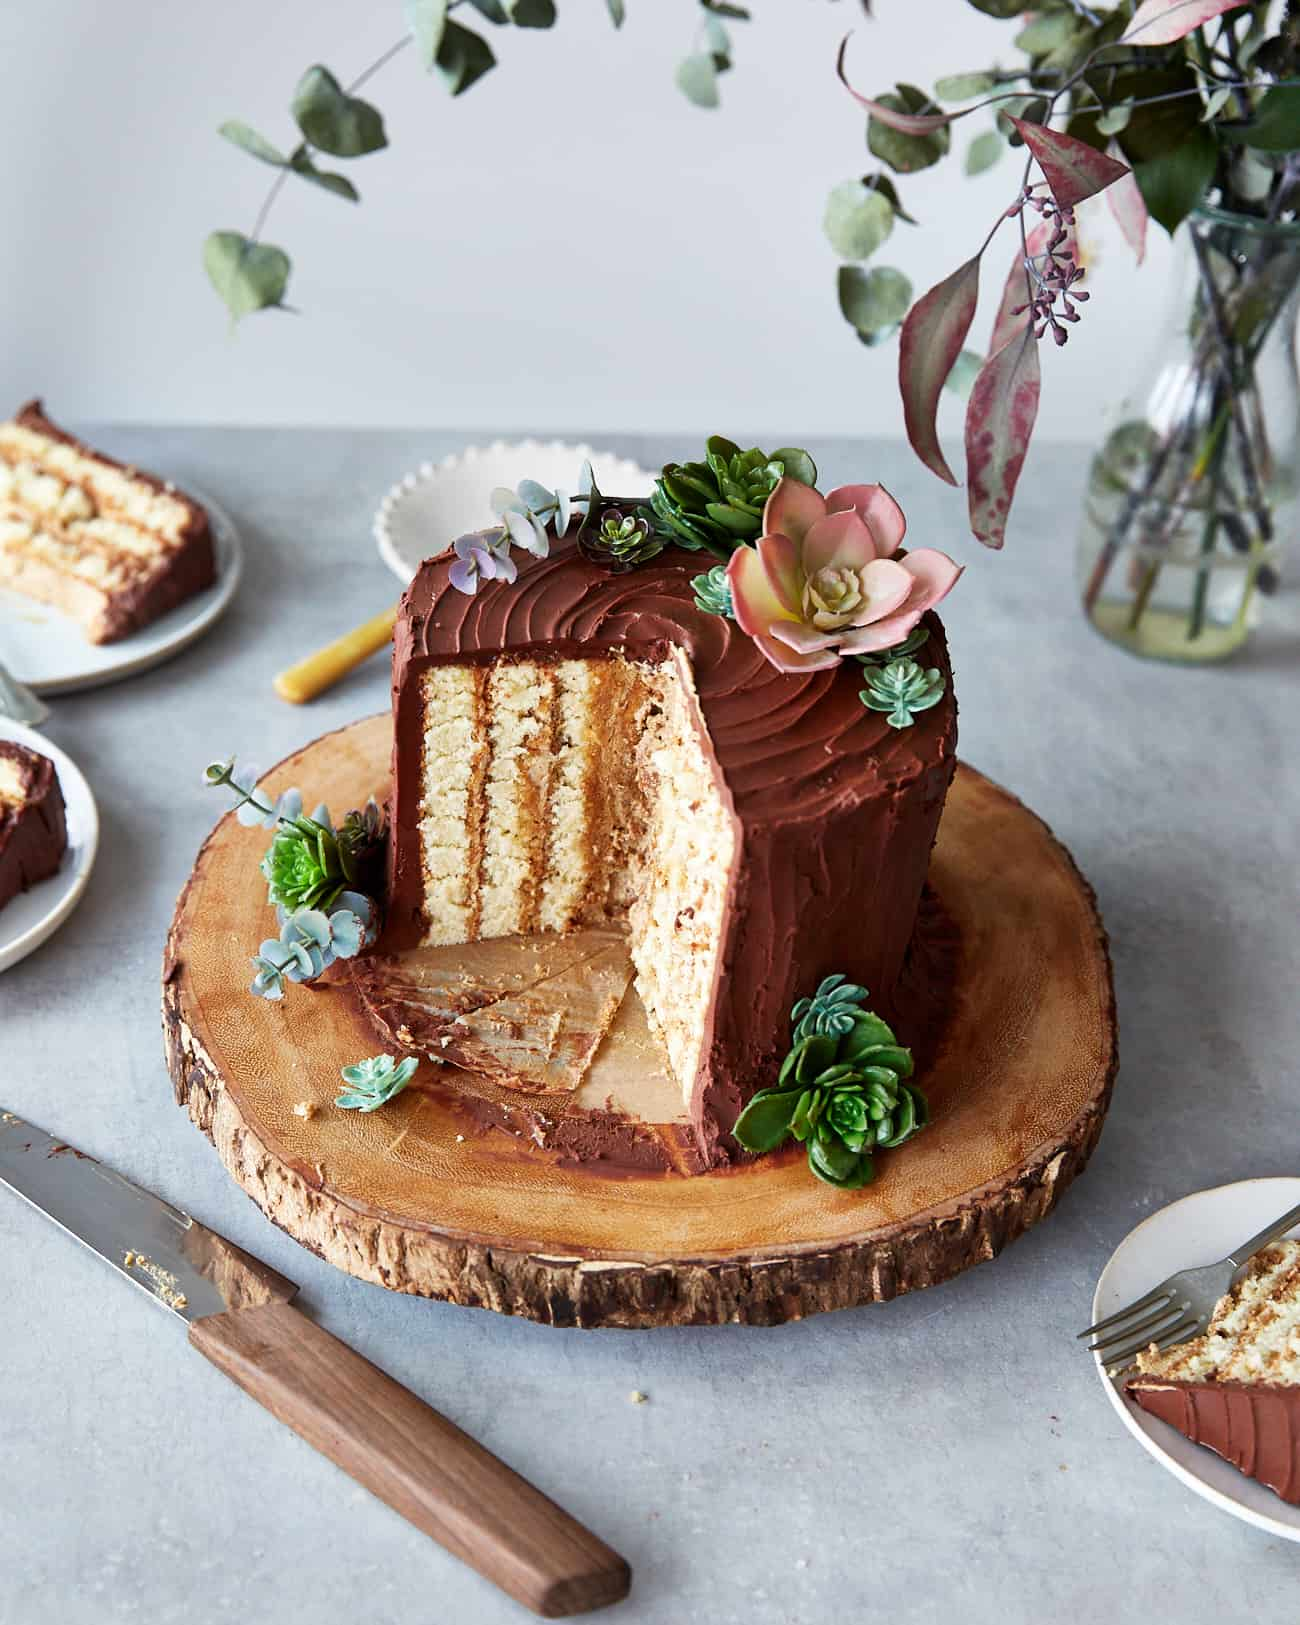 a vertical layer chocolate yule log decorated as a tree stump